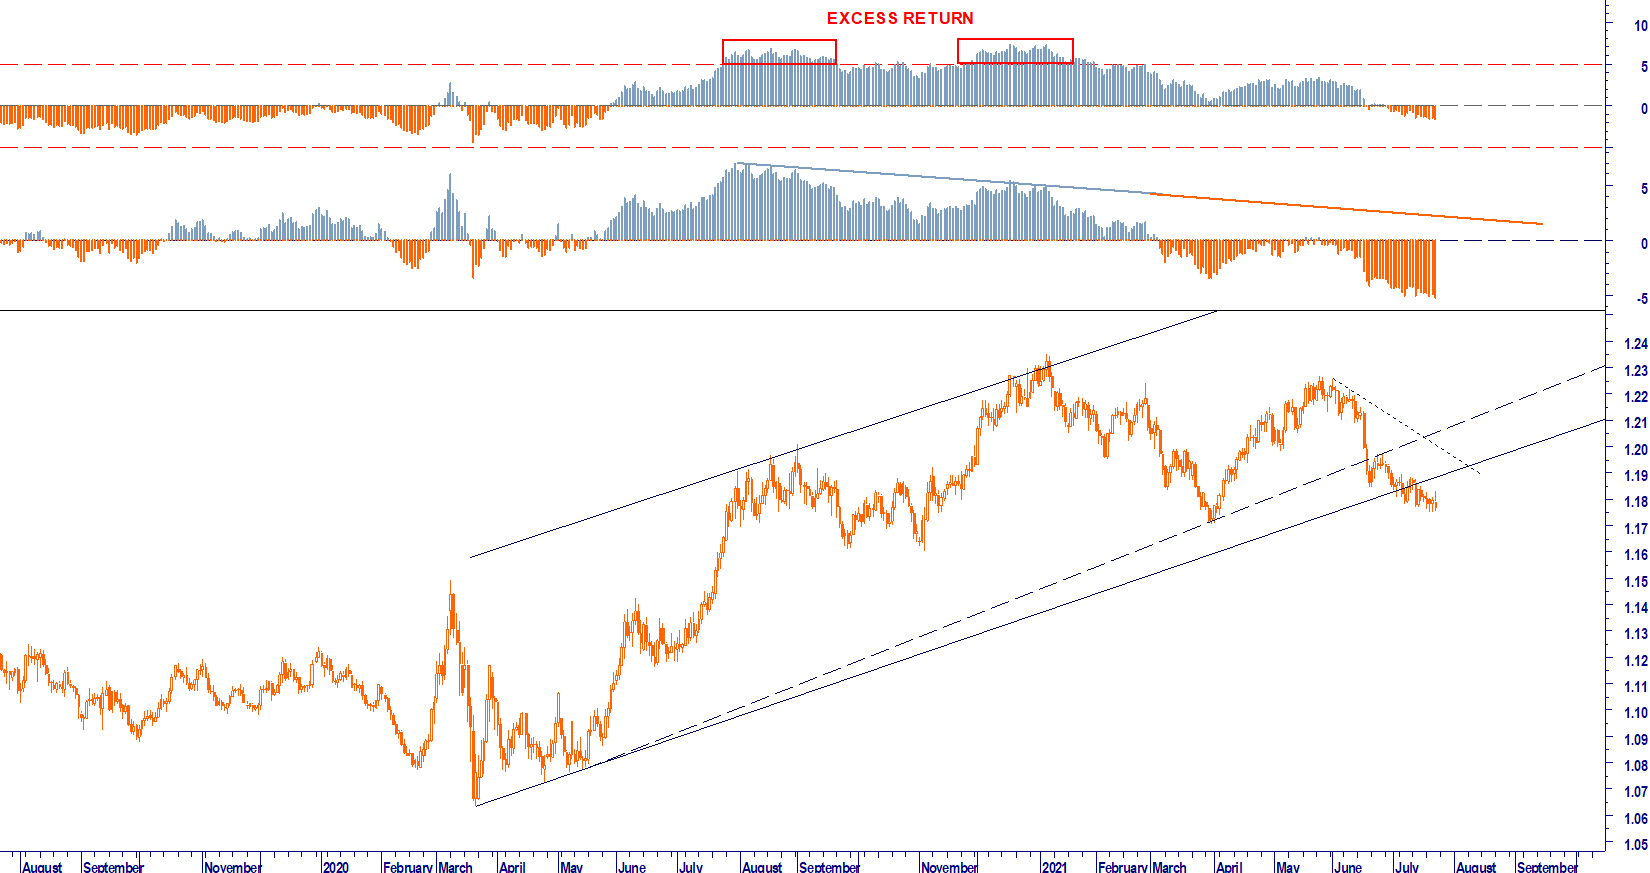 WB ANALYTICS: EUR USD TREND CYCLE